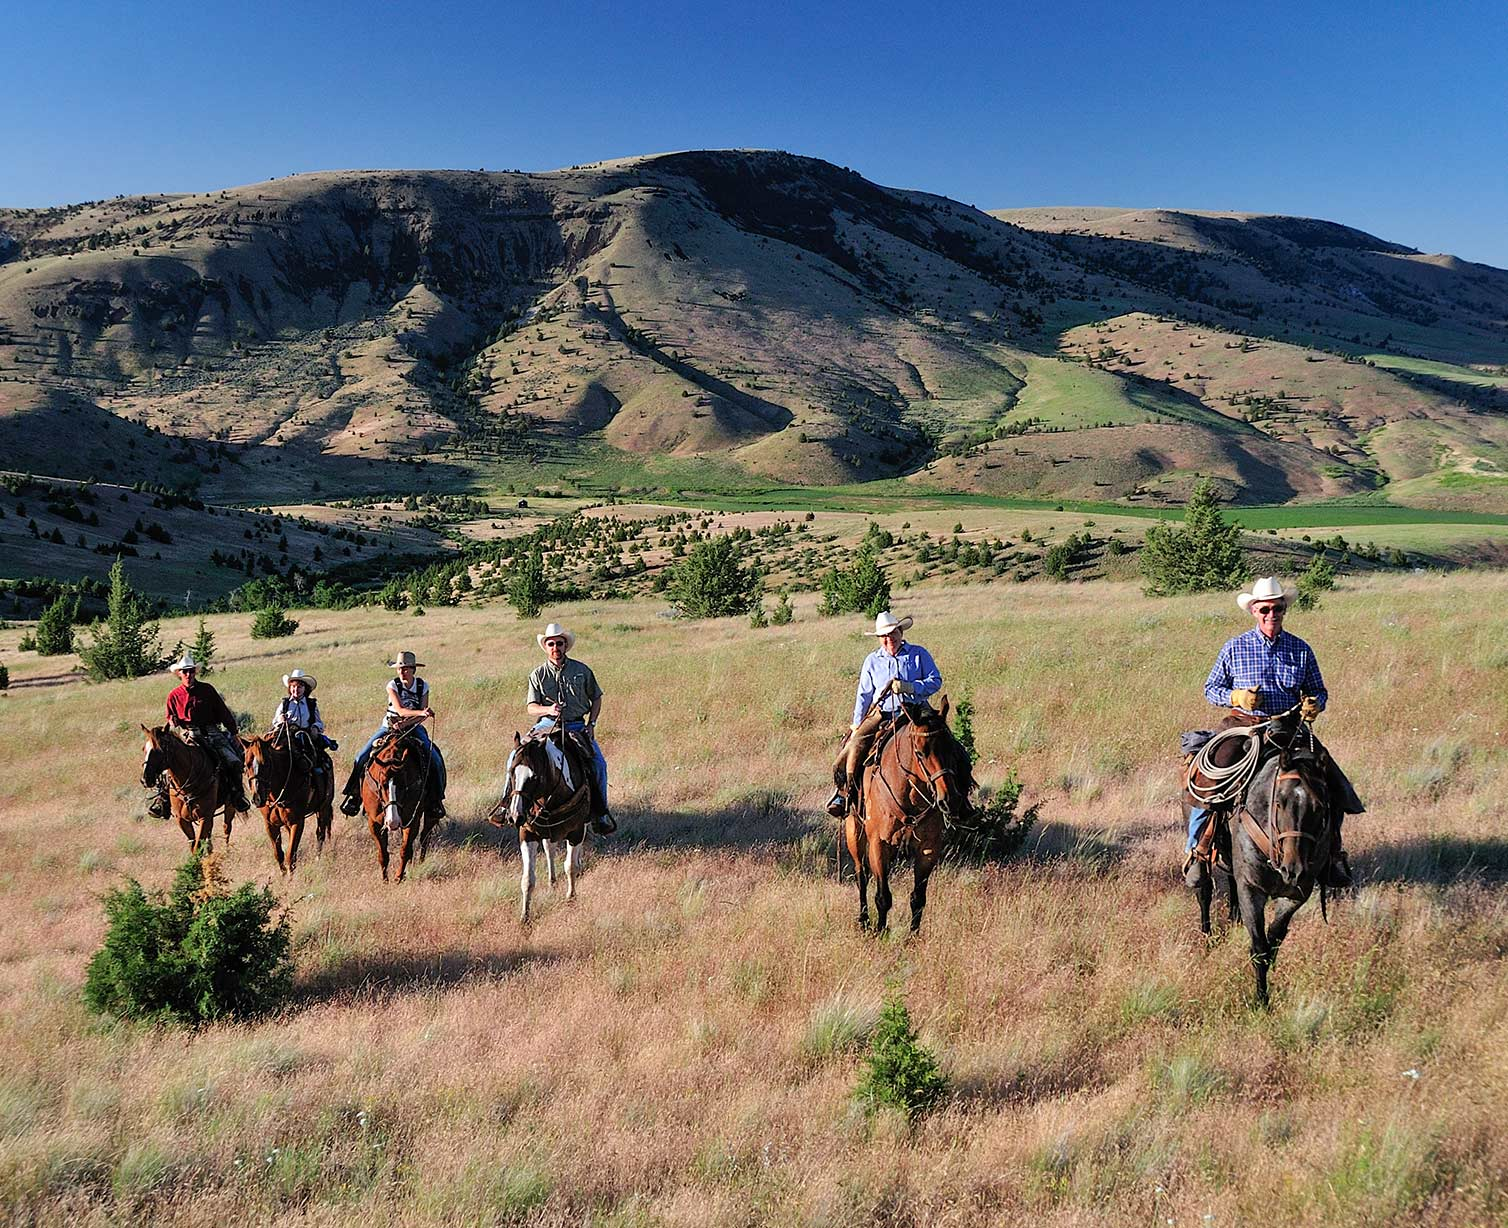 Six on horseback riding on a grassy plain